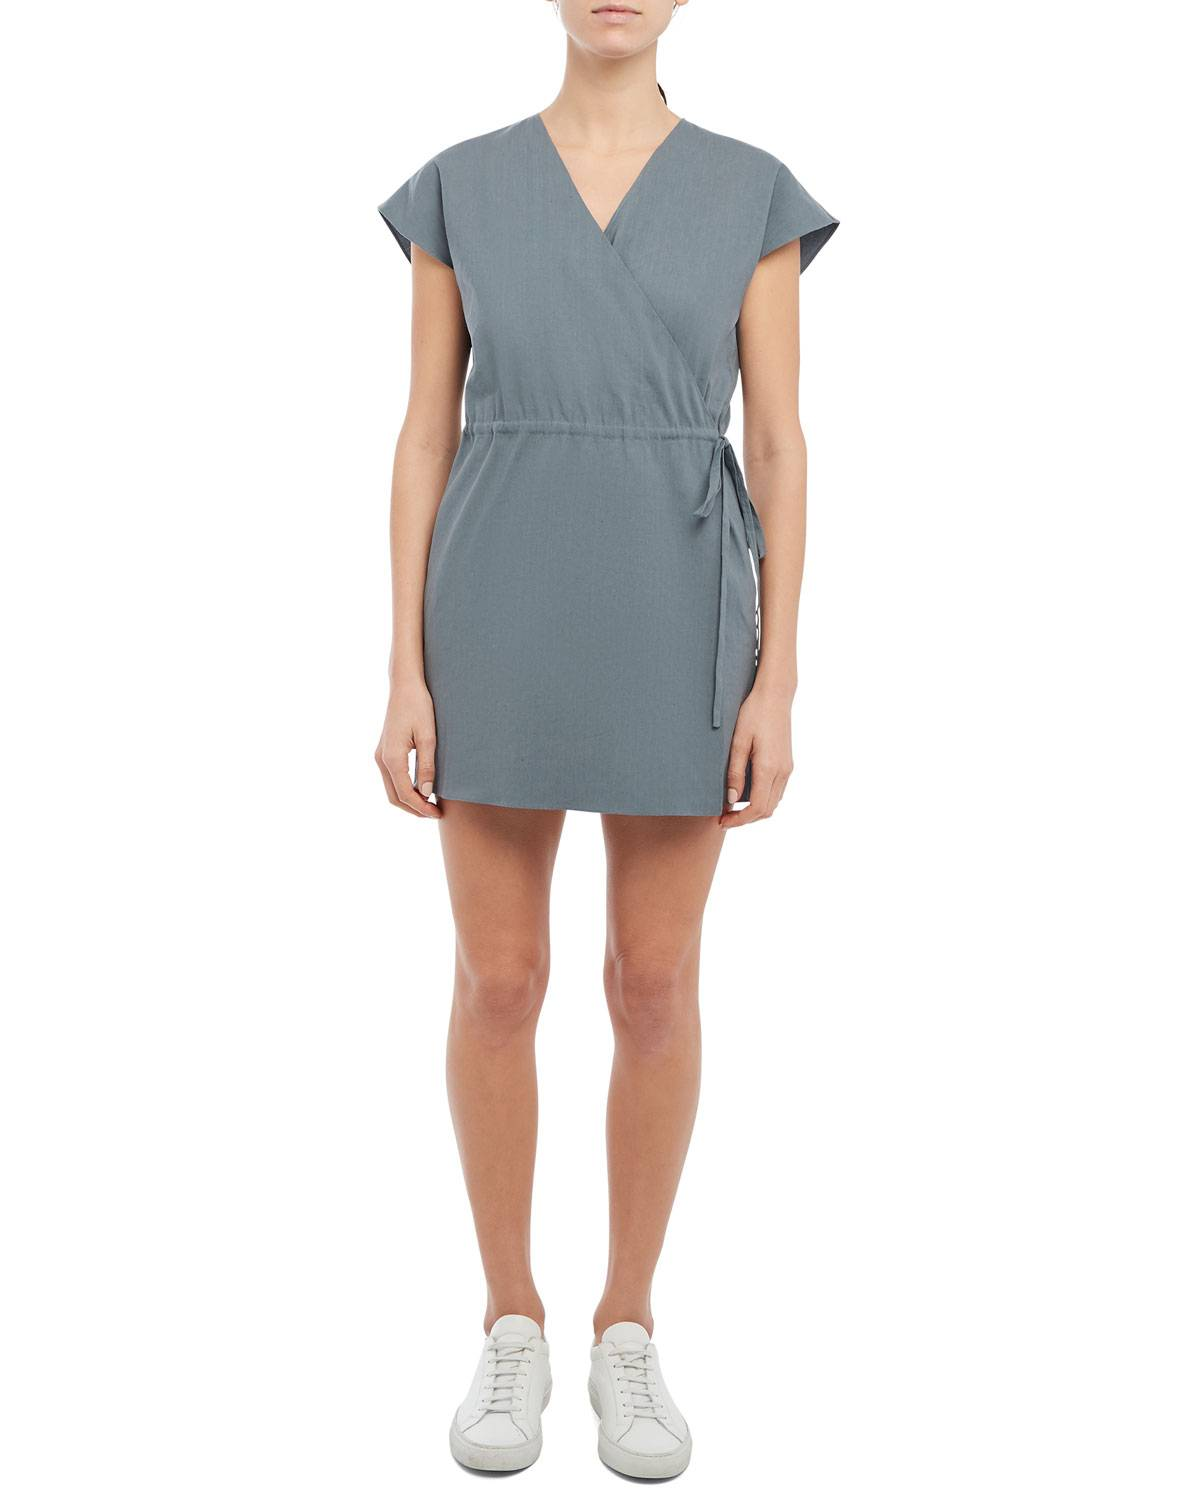 Theory Short-Sleeve Wrap Romper - Size: 12